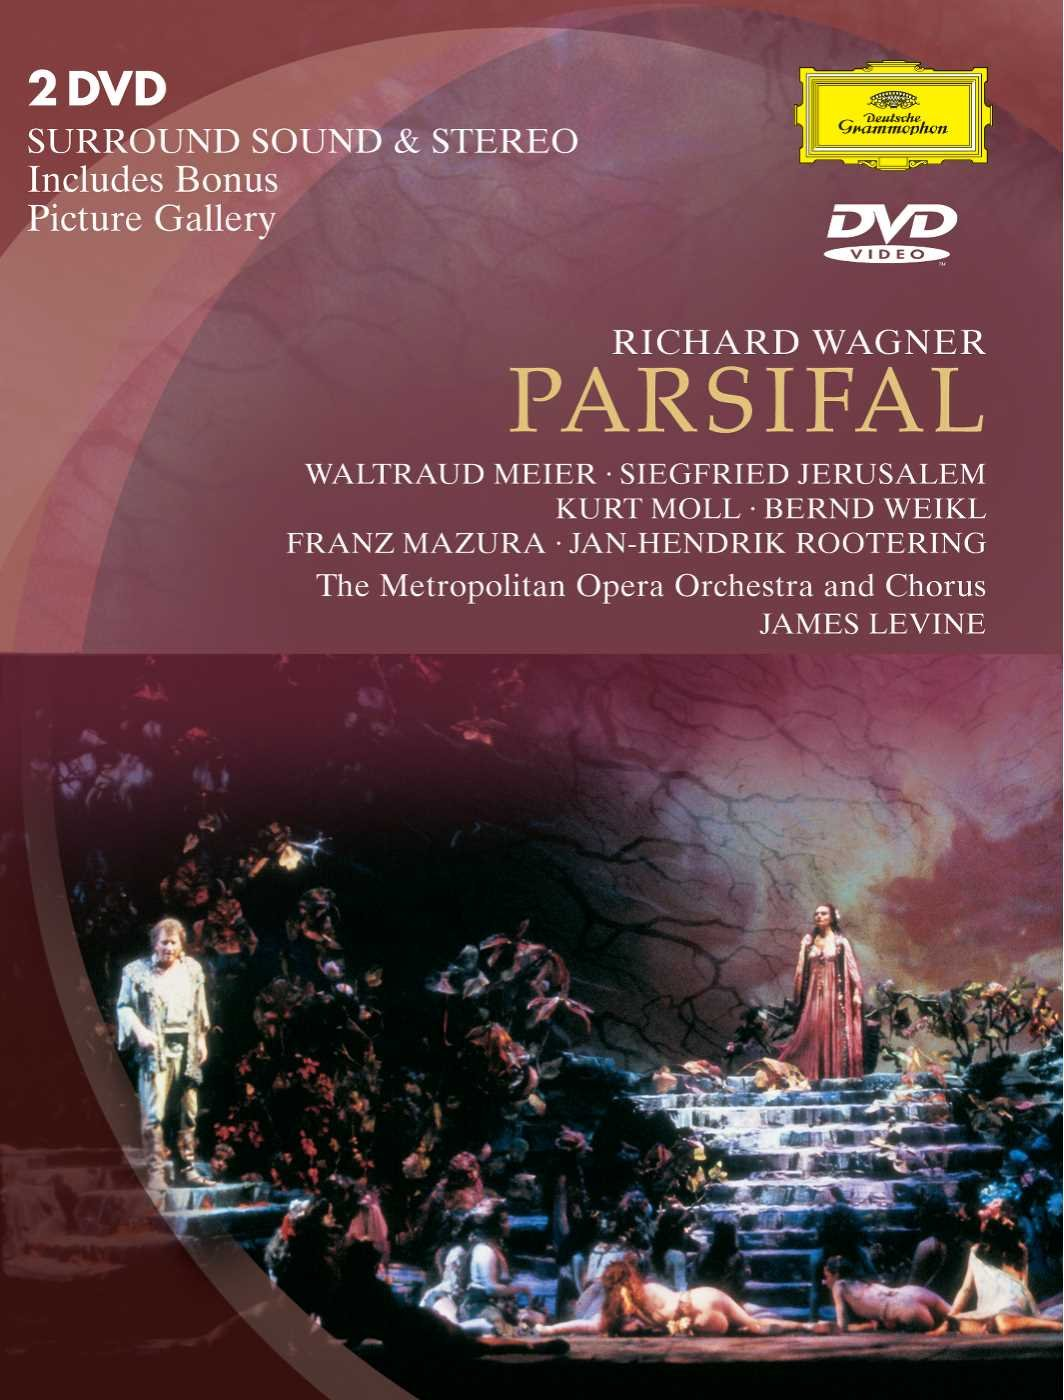 Wagner - Parsifal (3) - Page 13 71hhjBYrGfL._SL1400_